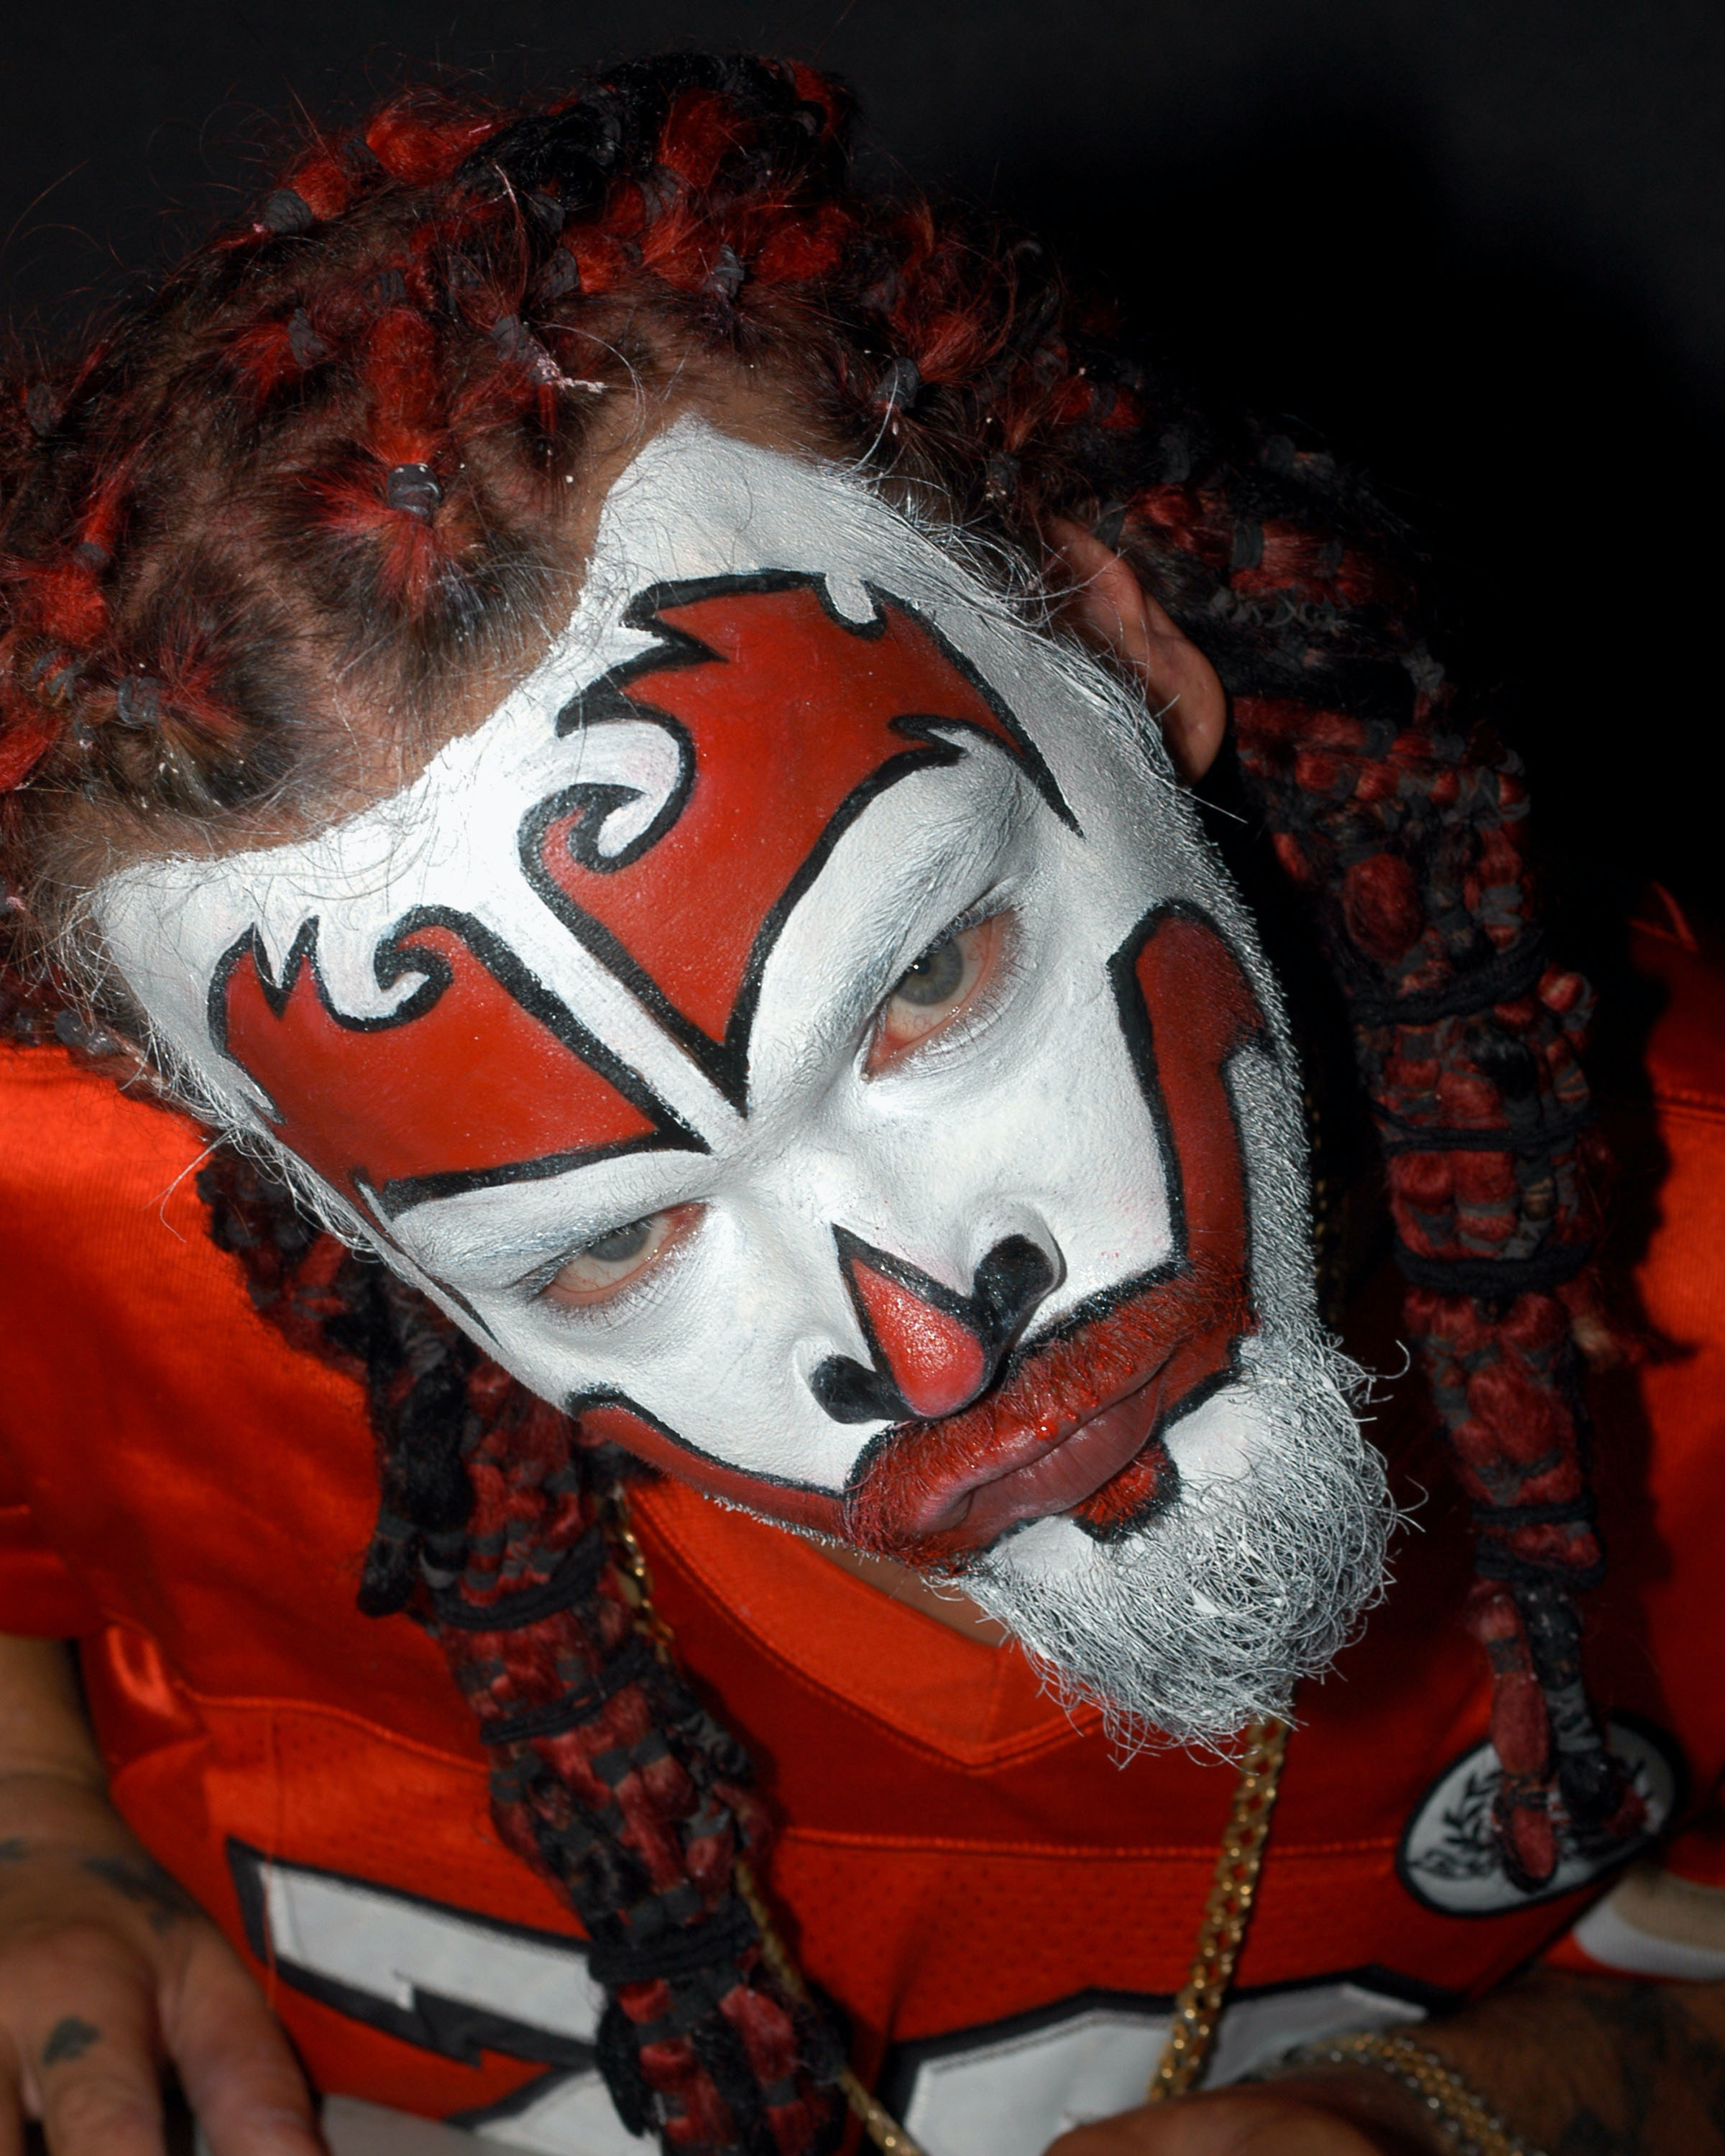 Thousands of Juggalos expected to march on Washington